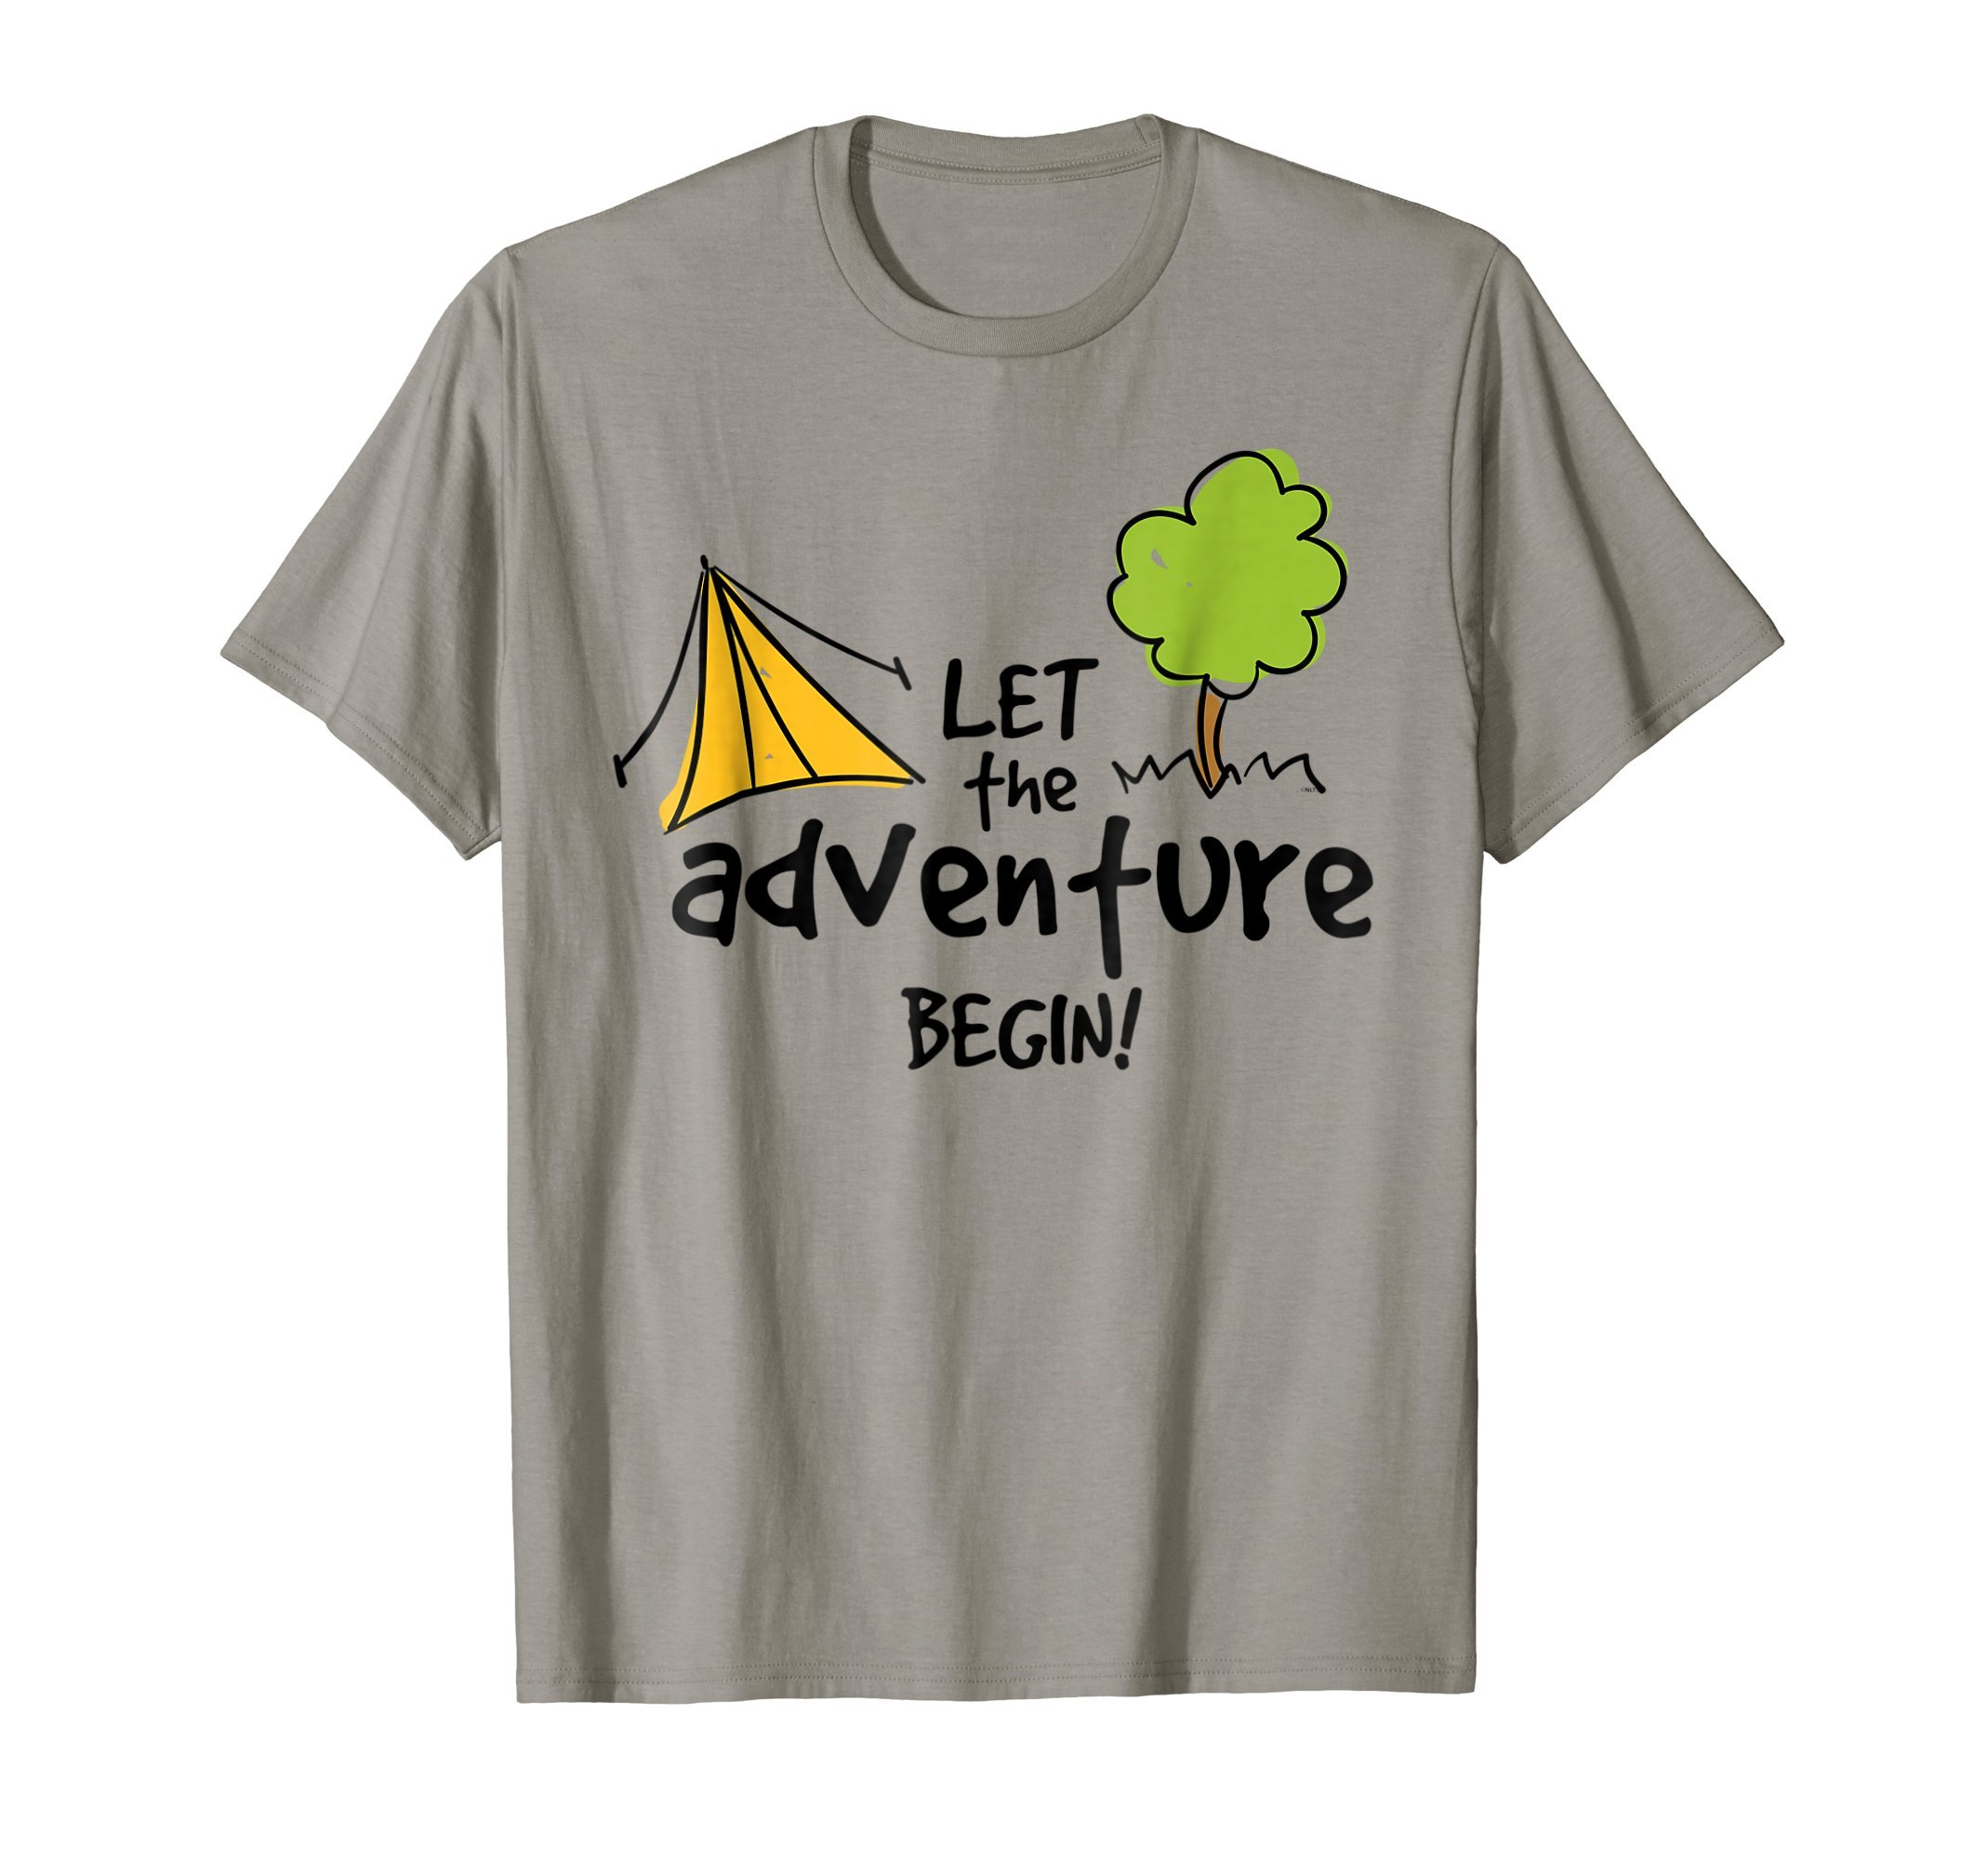 Let-the-adventure-begin-Camping-Fun-T-Shirt-Gift-Tee-Shirt